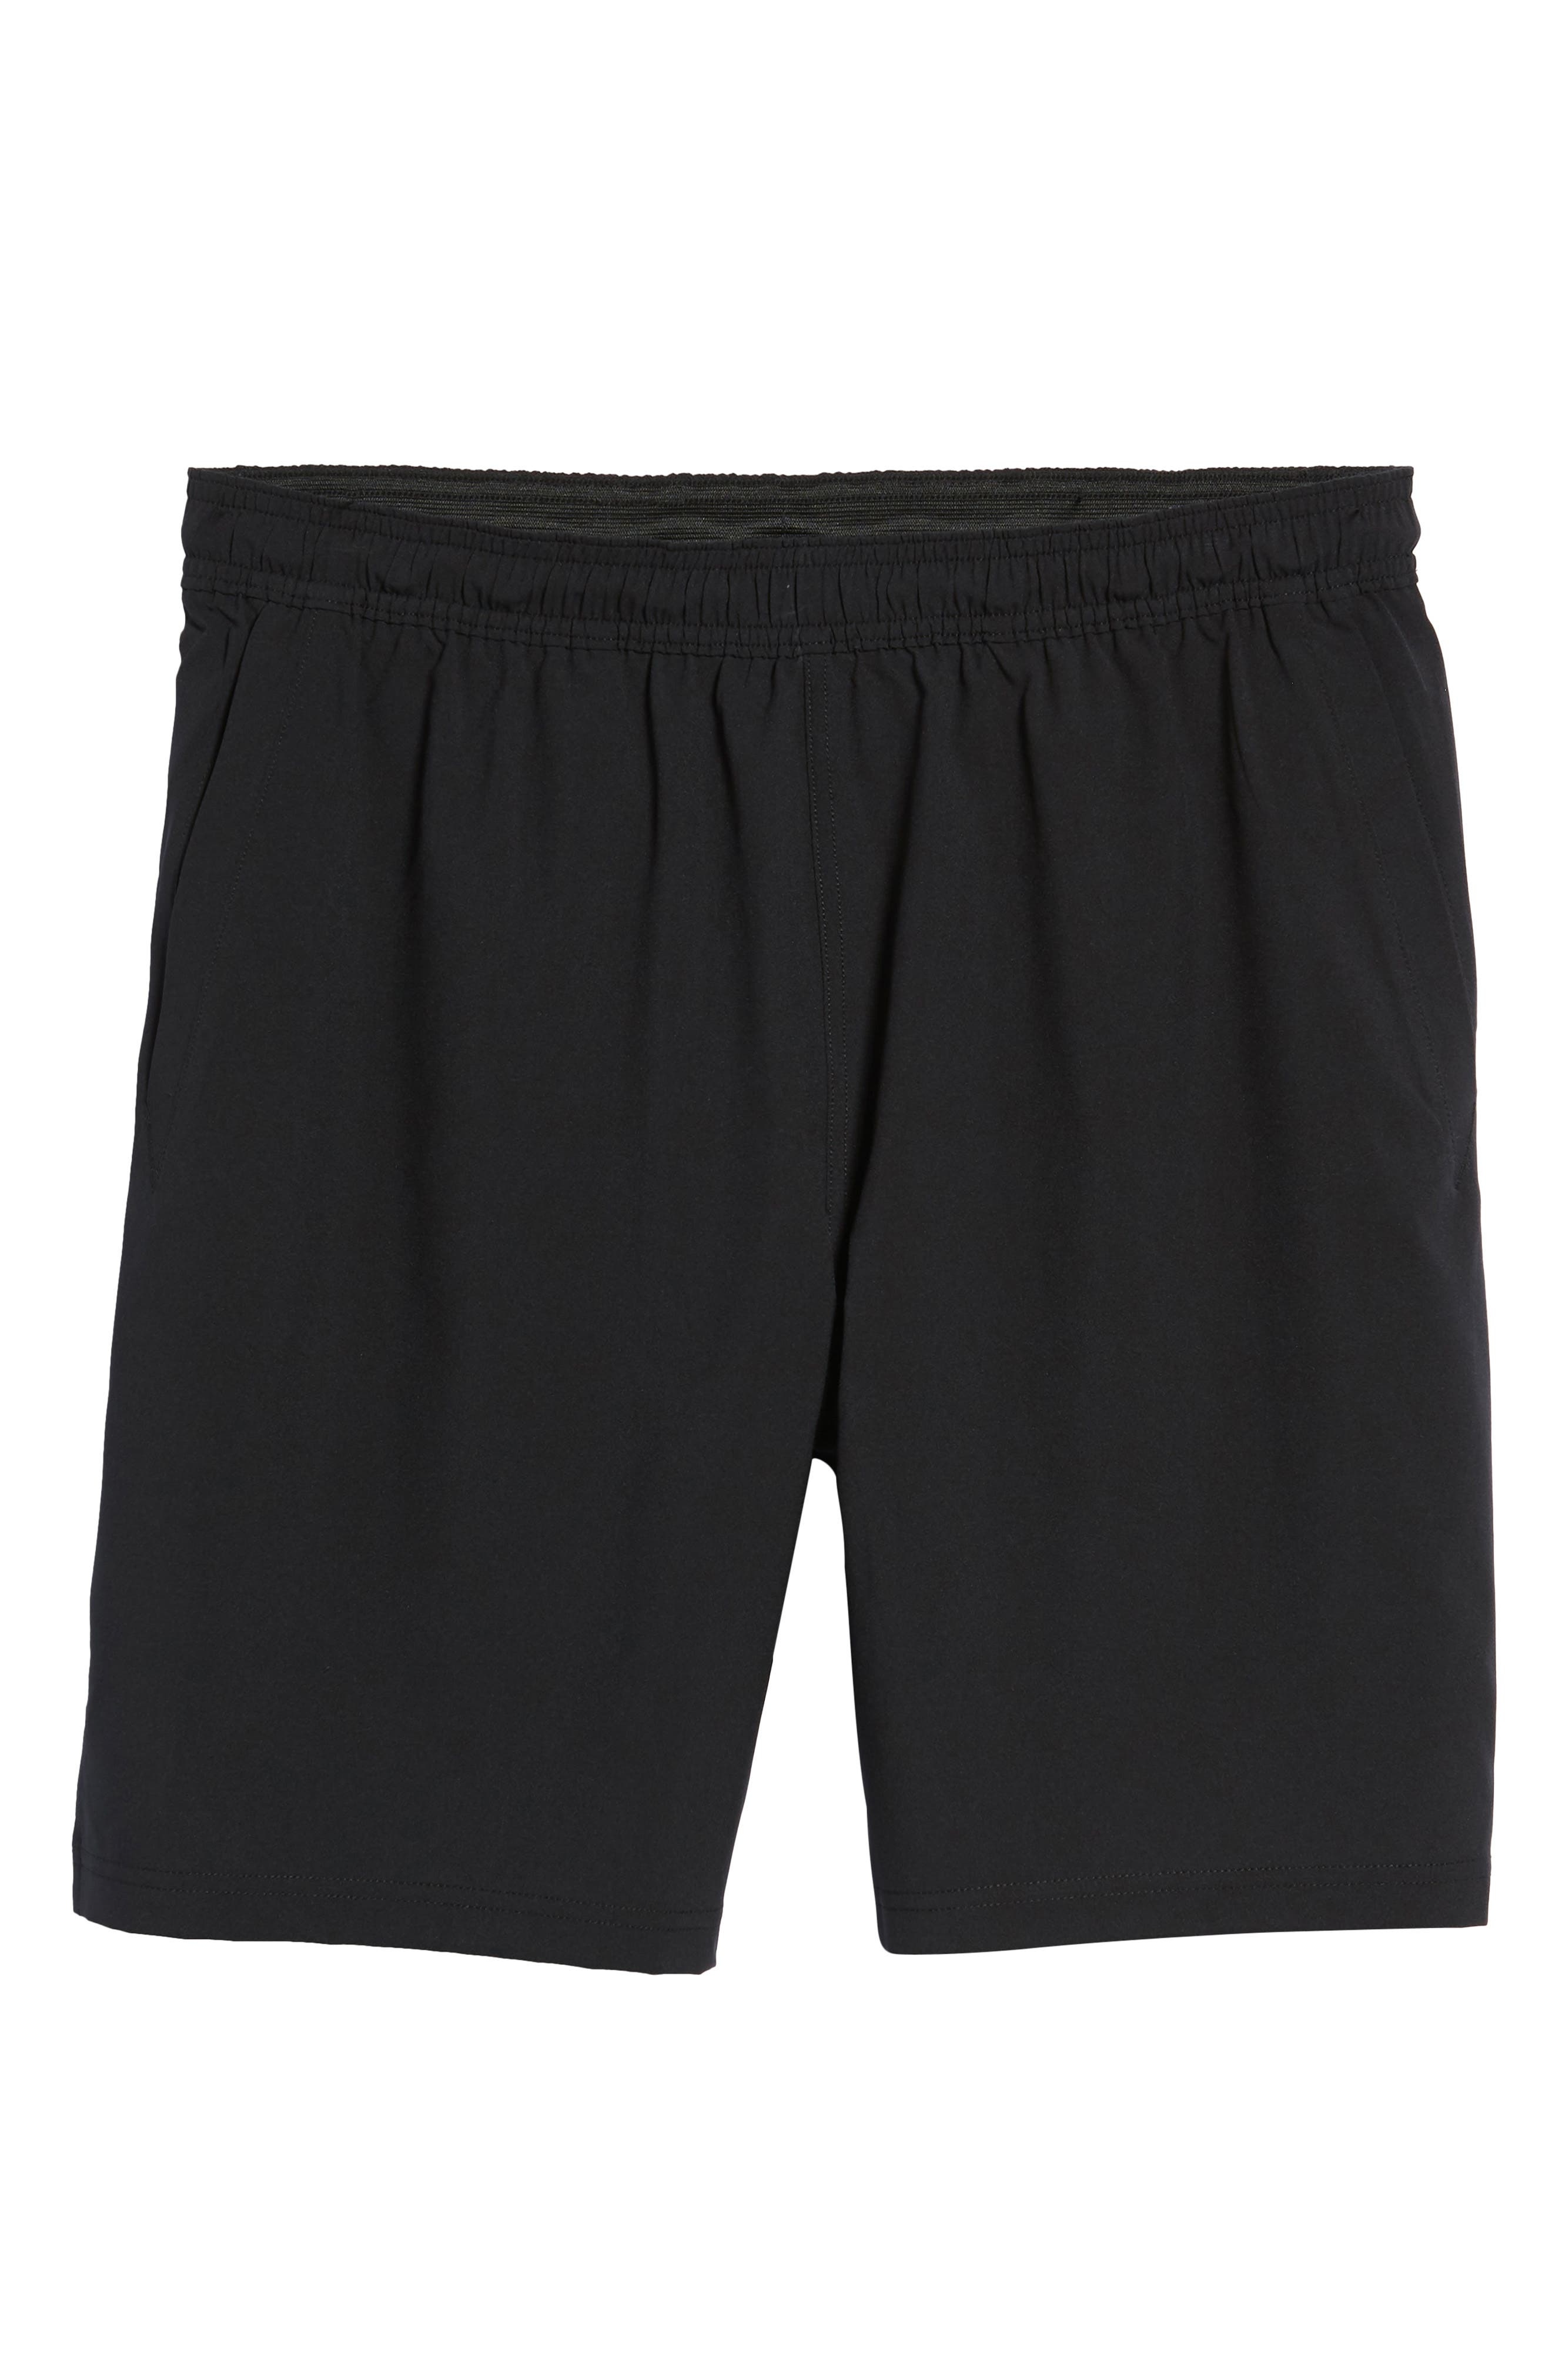 ZELLA,                             Graphite Perforated Shorts,                             Alternate thumbnail 6, color,                             BLACK